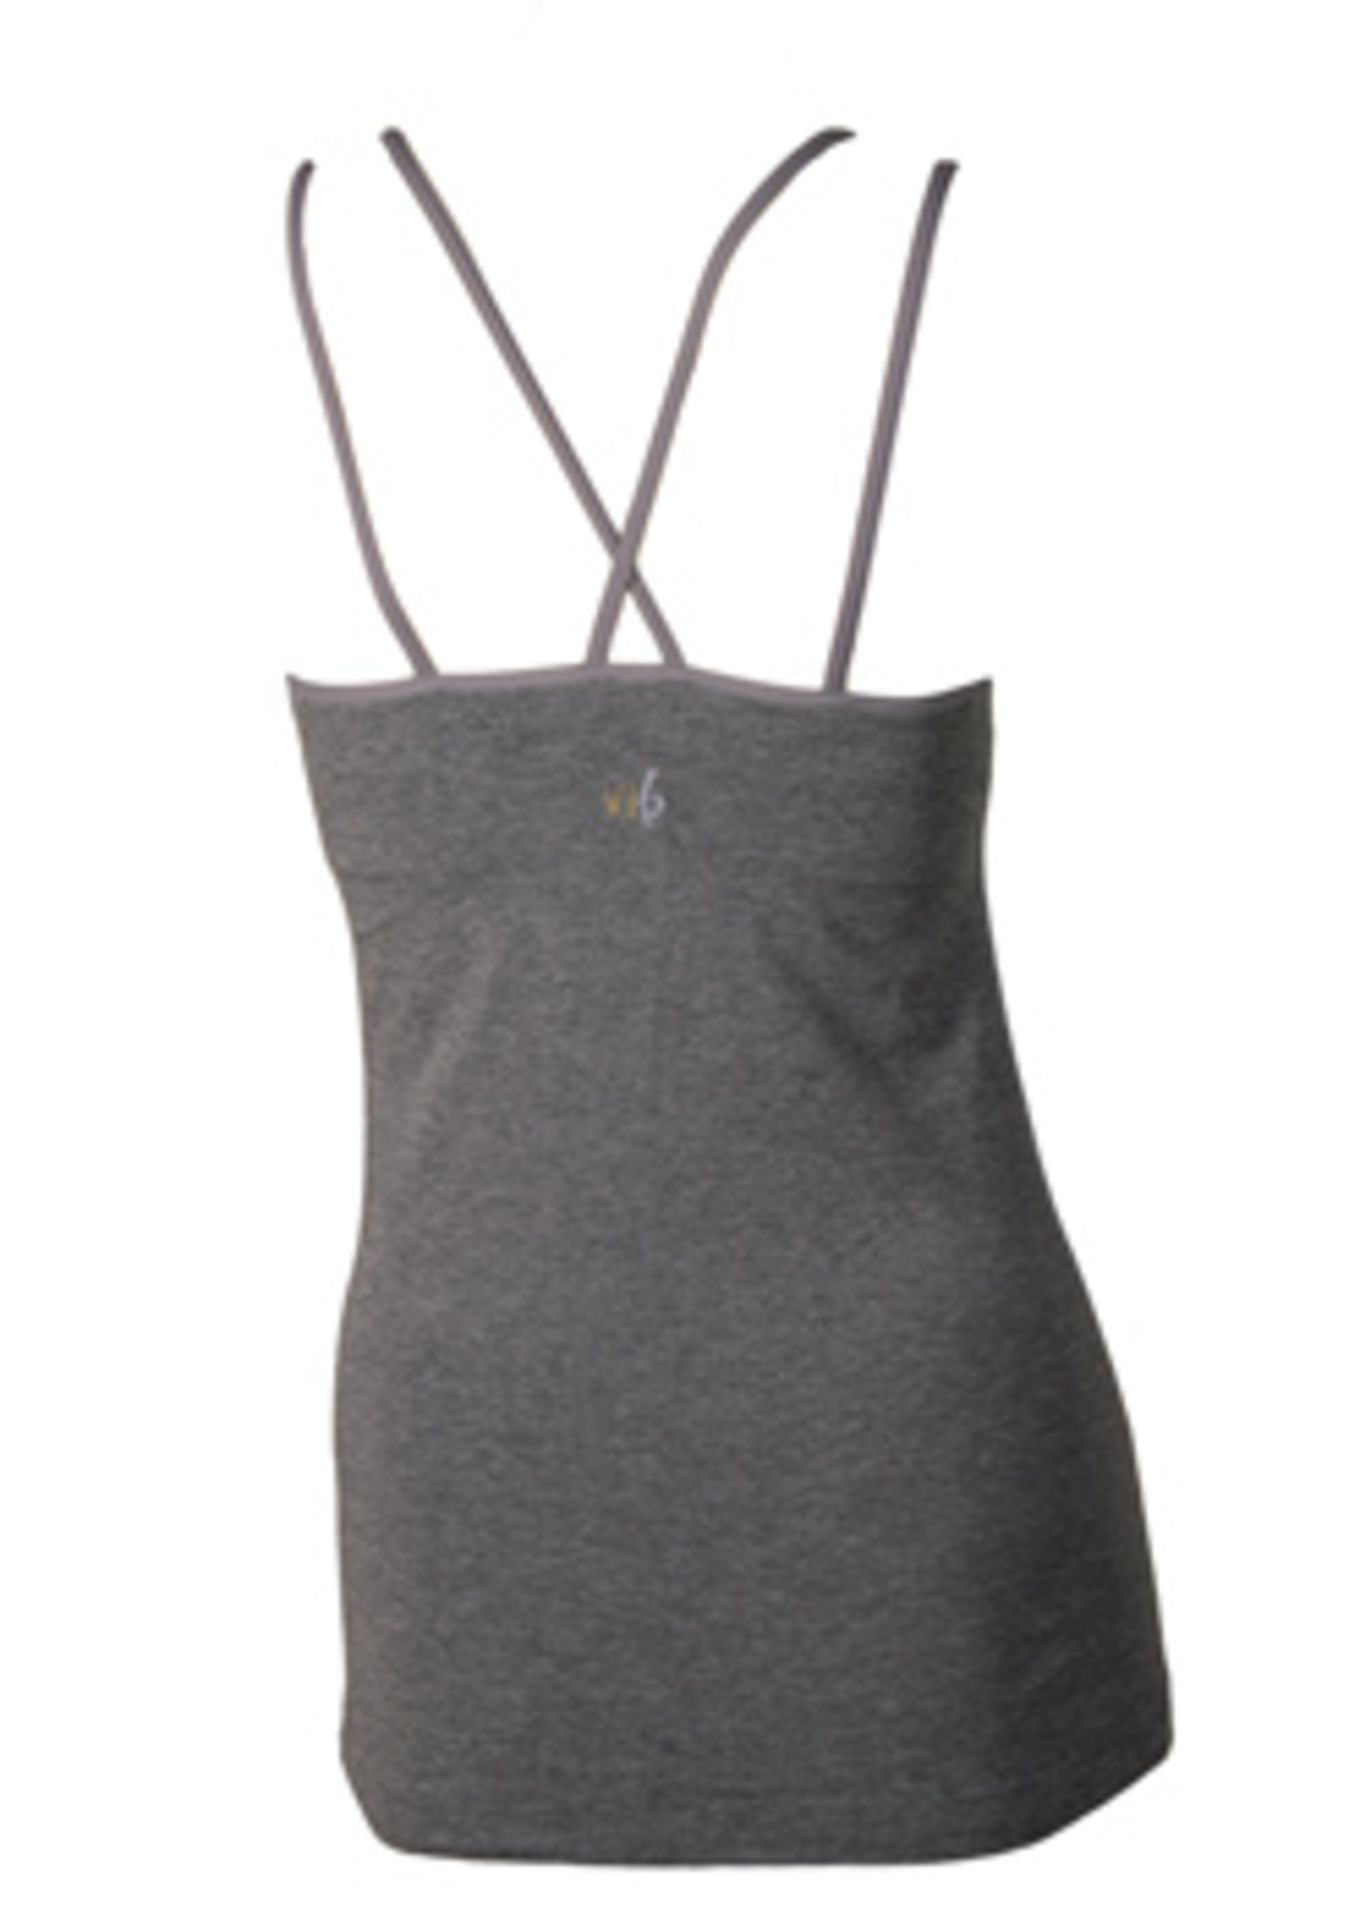 3 x Bamboo Yoga Flow Tops w/ Padded Bra   XS - Image 3 of 4